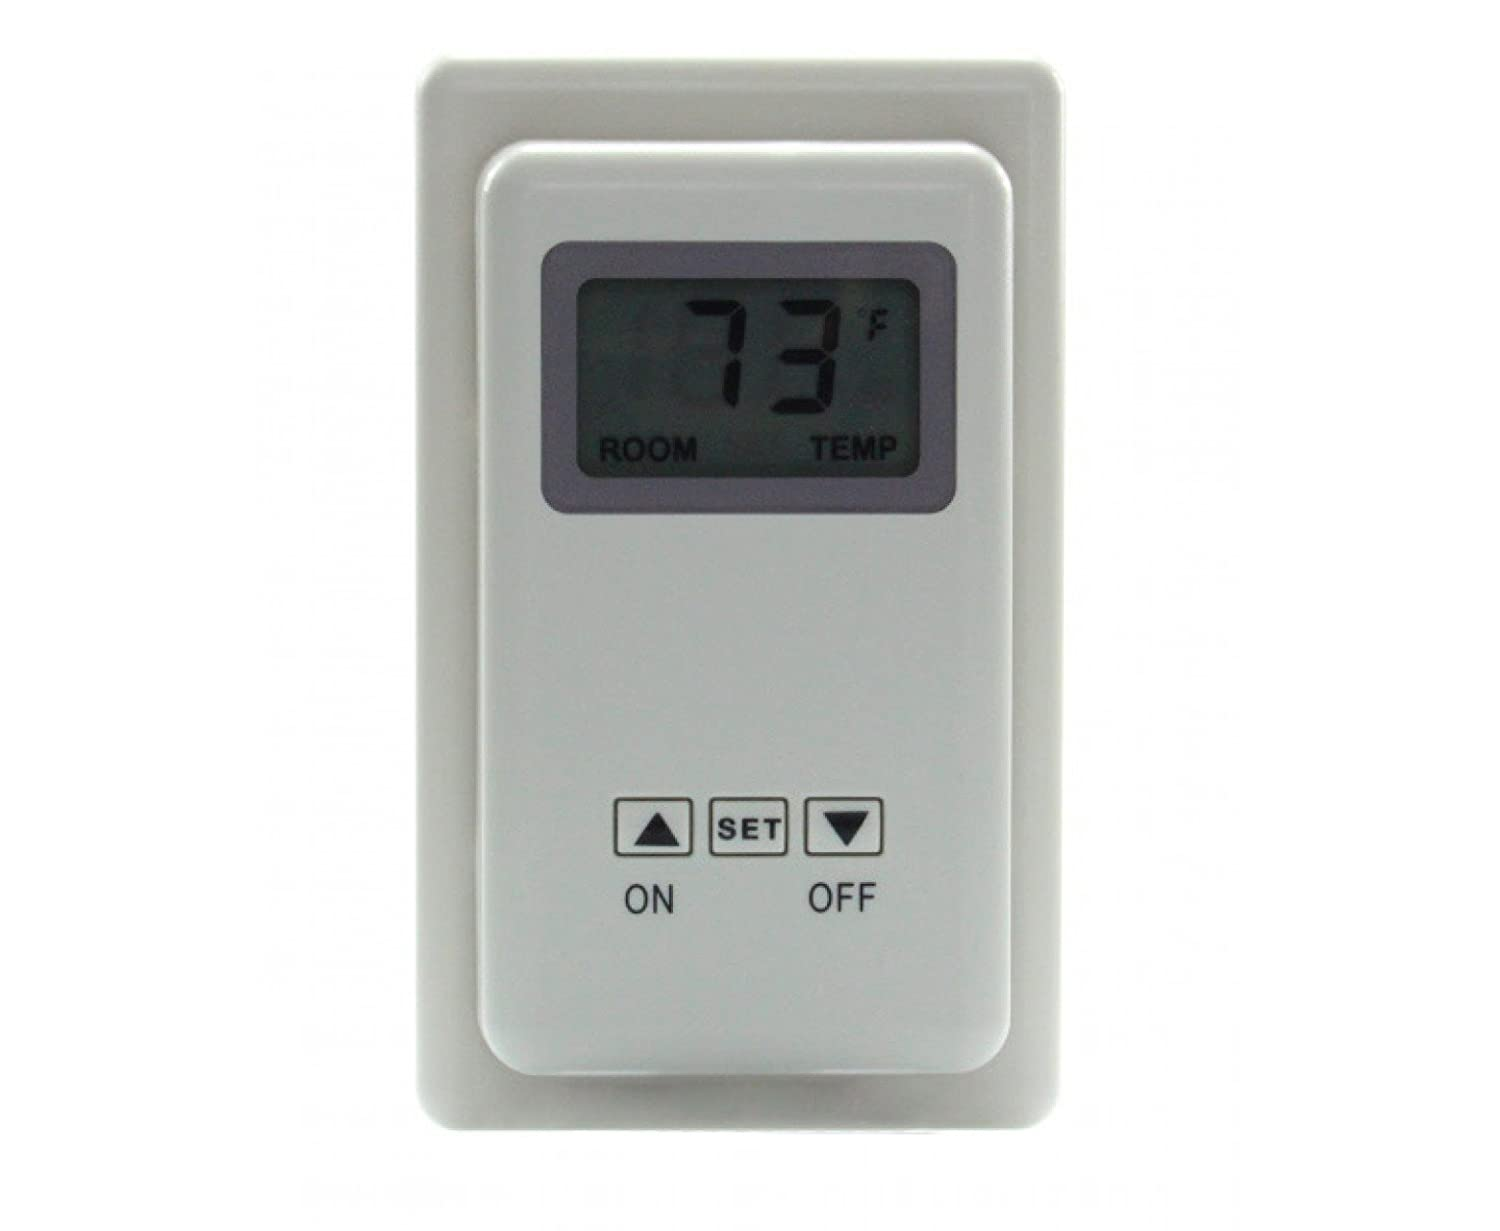 SkyTech TS-3 Wired Wall Mounted Thermostat Fireplace Control (SKY-TS-3)